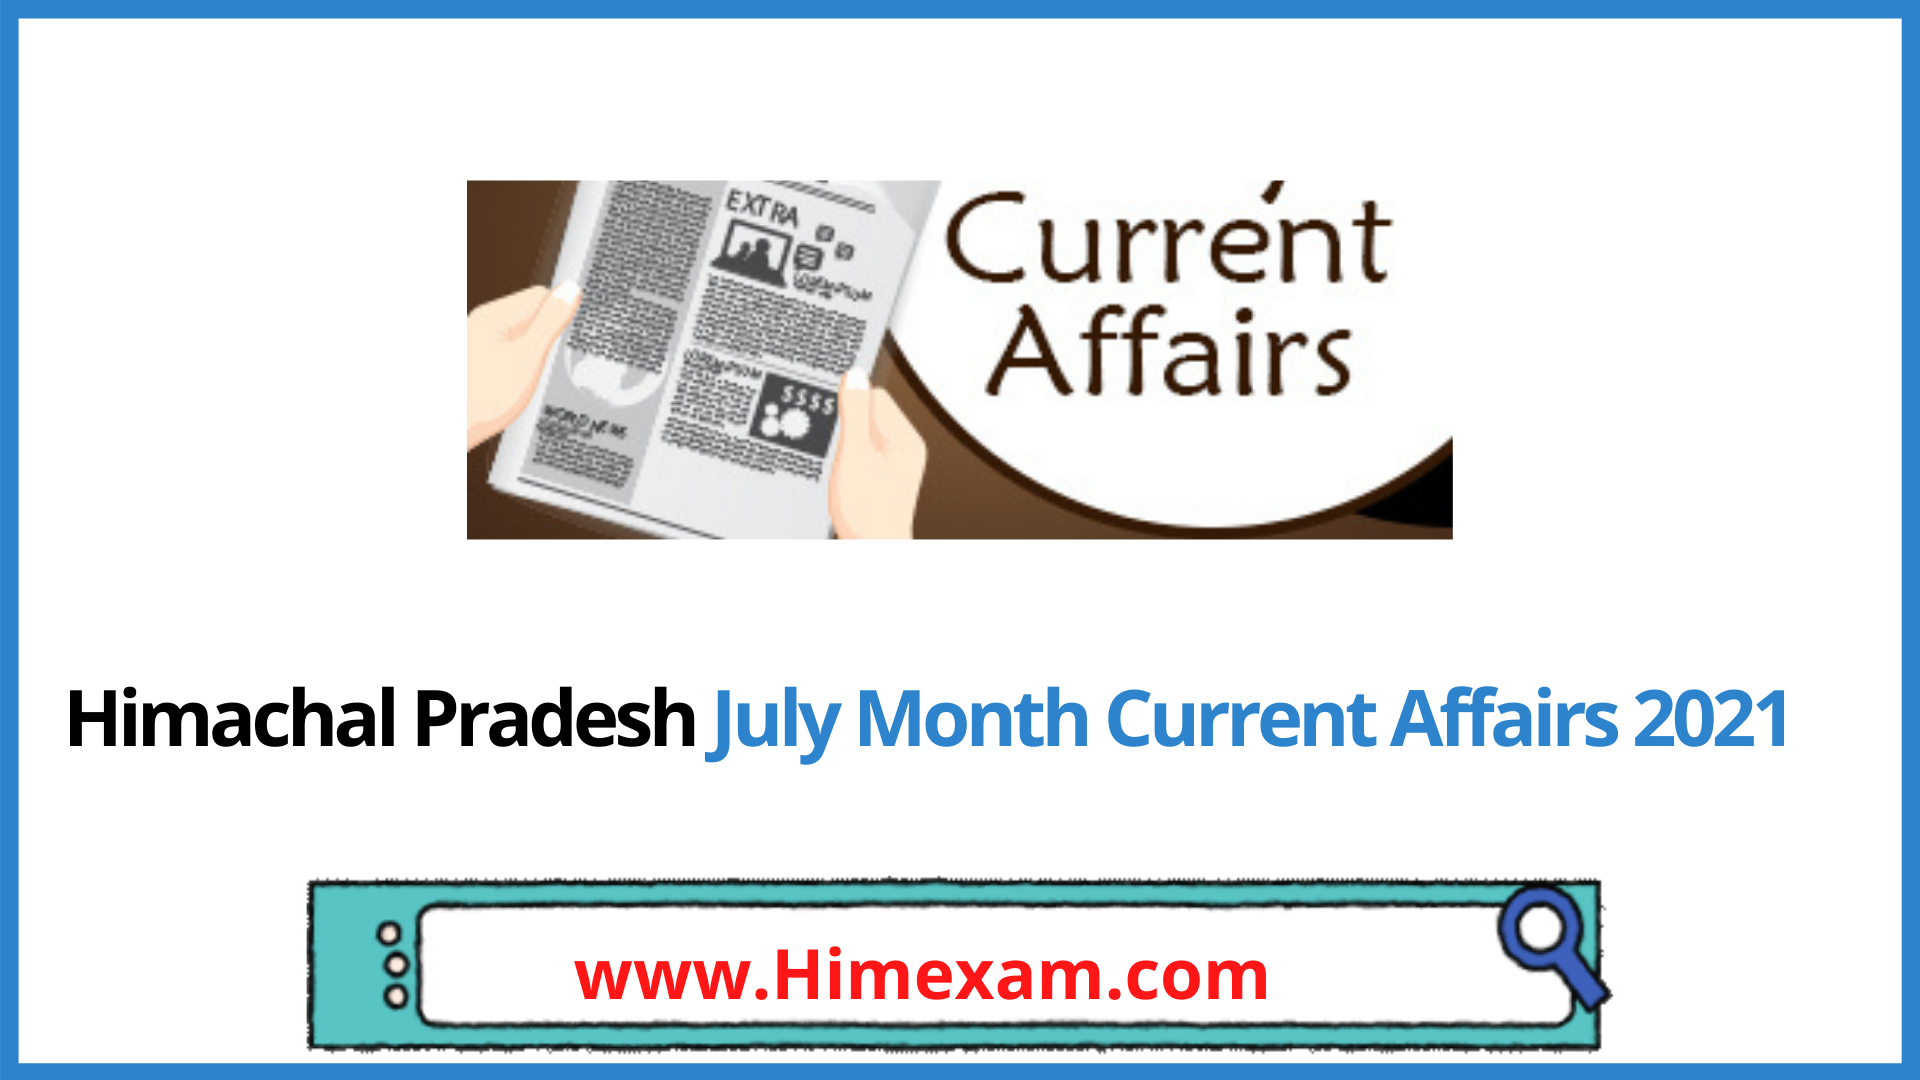 Himachal Pradesh July Month Current Affairs 2021 In English